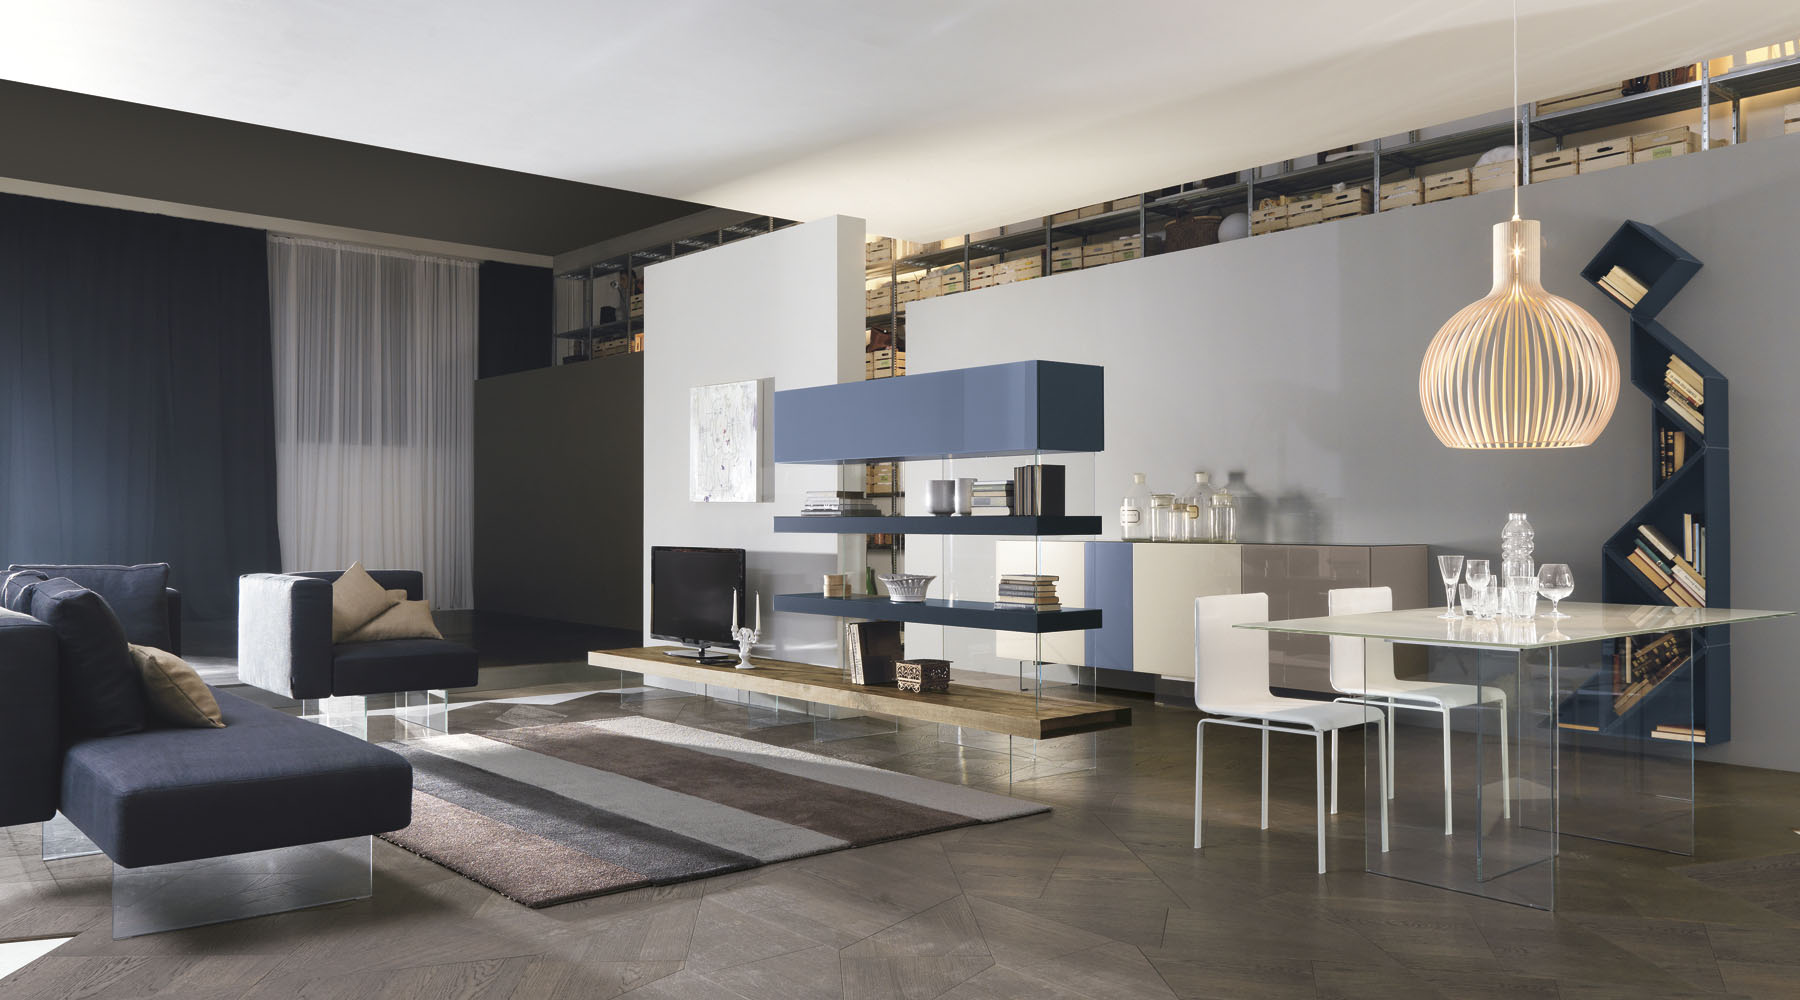 Italia Design Möbel Discover Lago Design Furniture To Decorate Your Home Lago Design